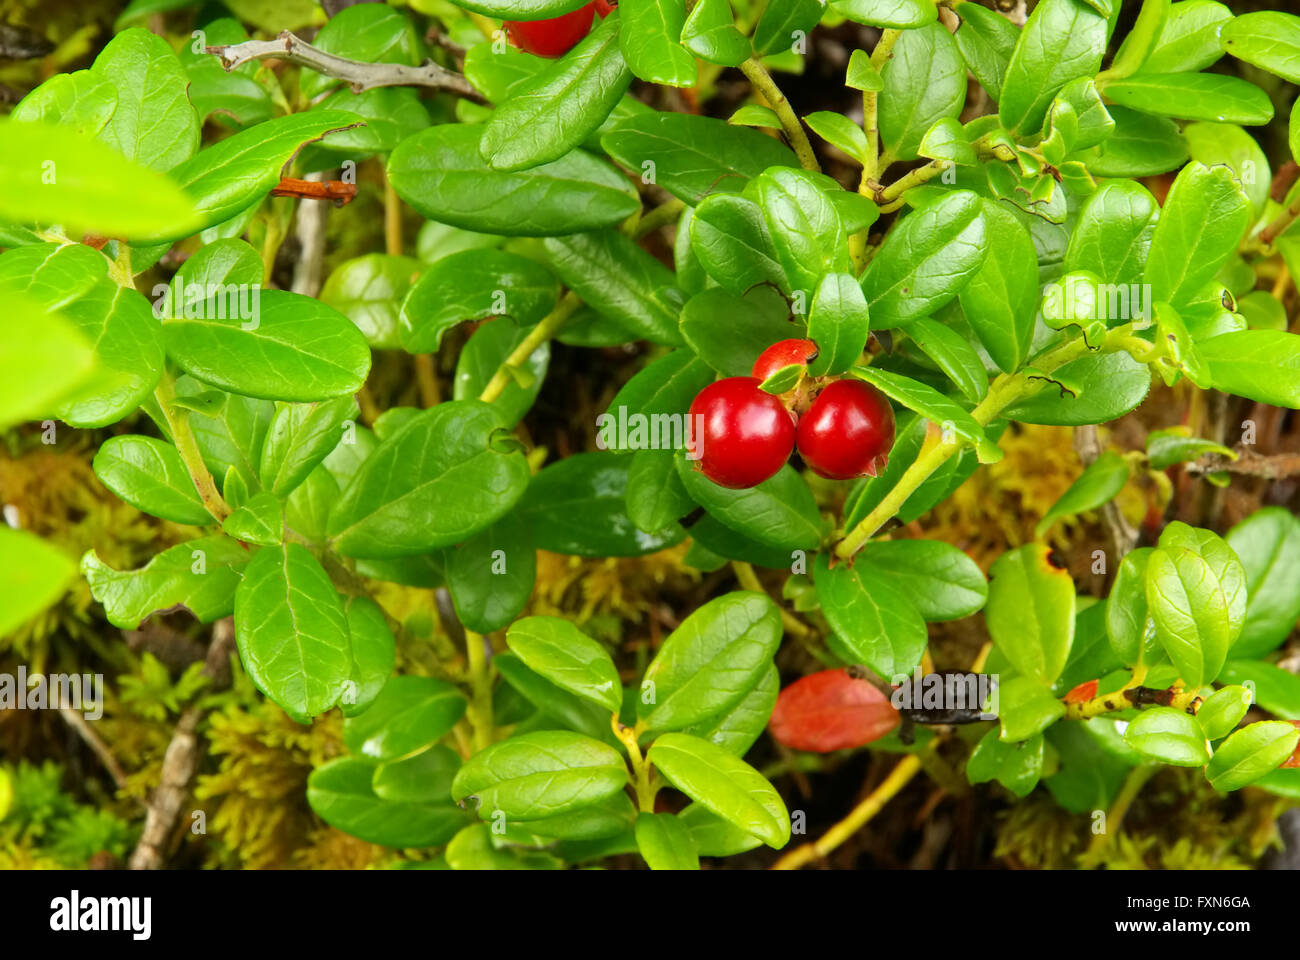 Preiselbeere Pflanze - cowberry plant 08 - Stock Image